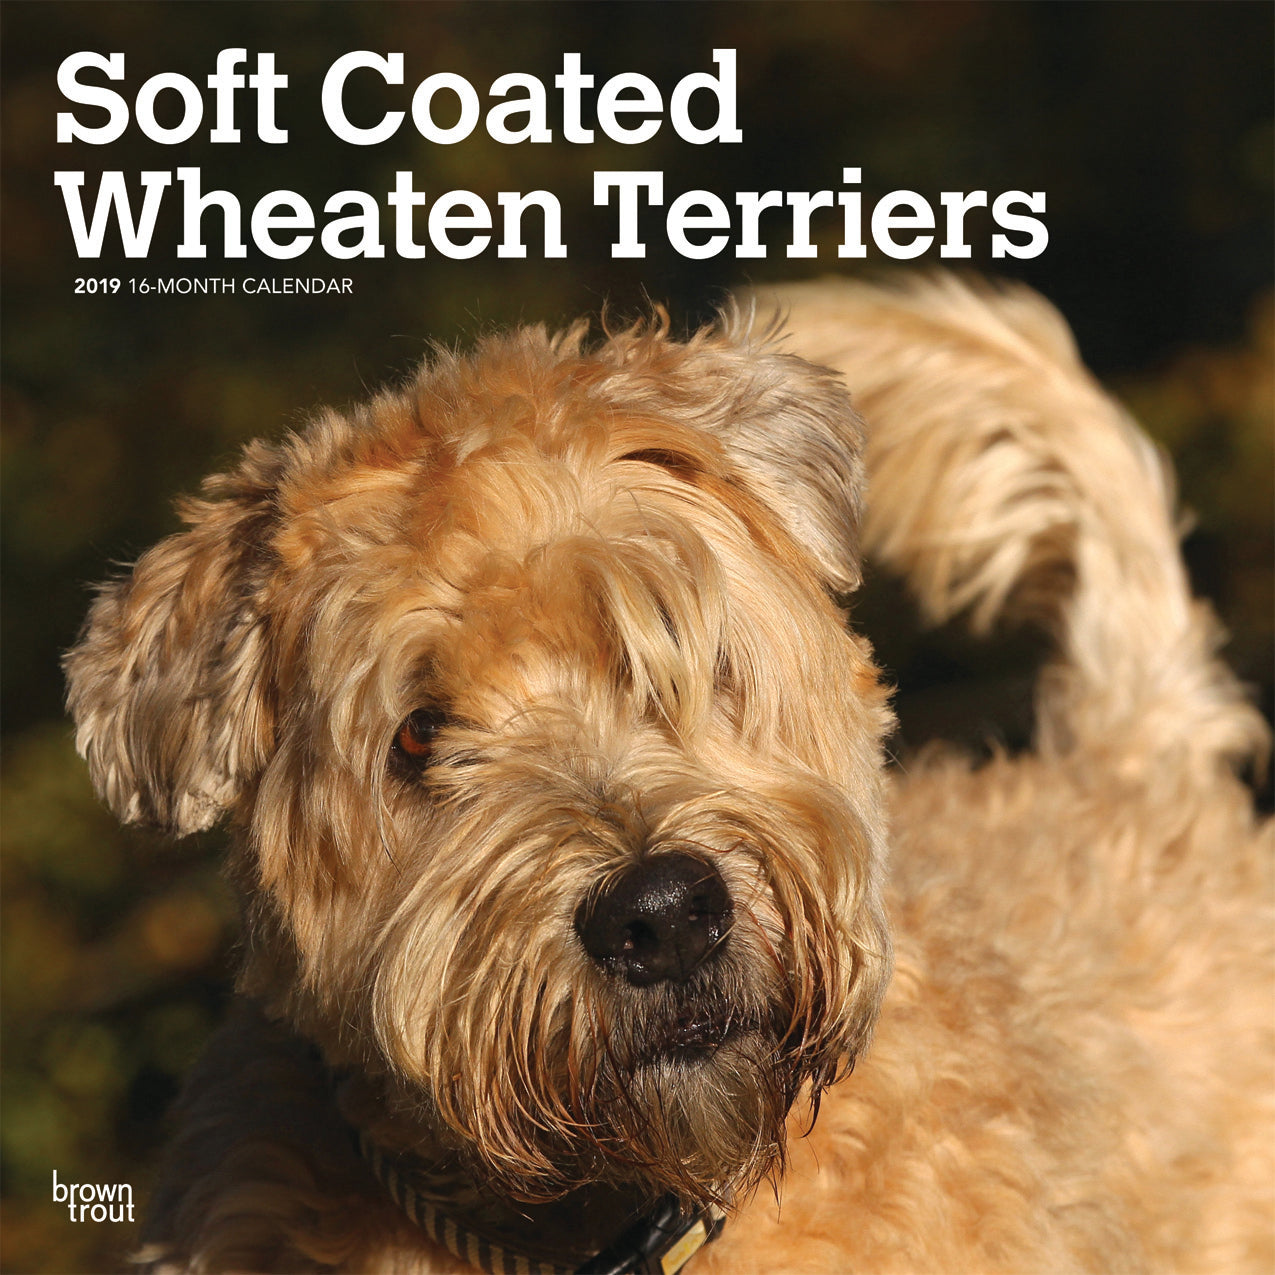 Soft Coated Wheaton Terriers 2019 Wall Calendar